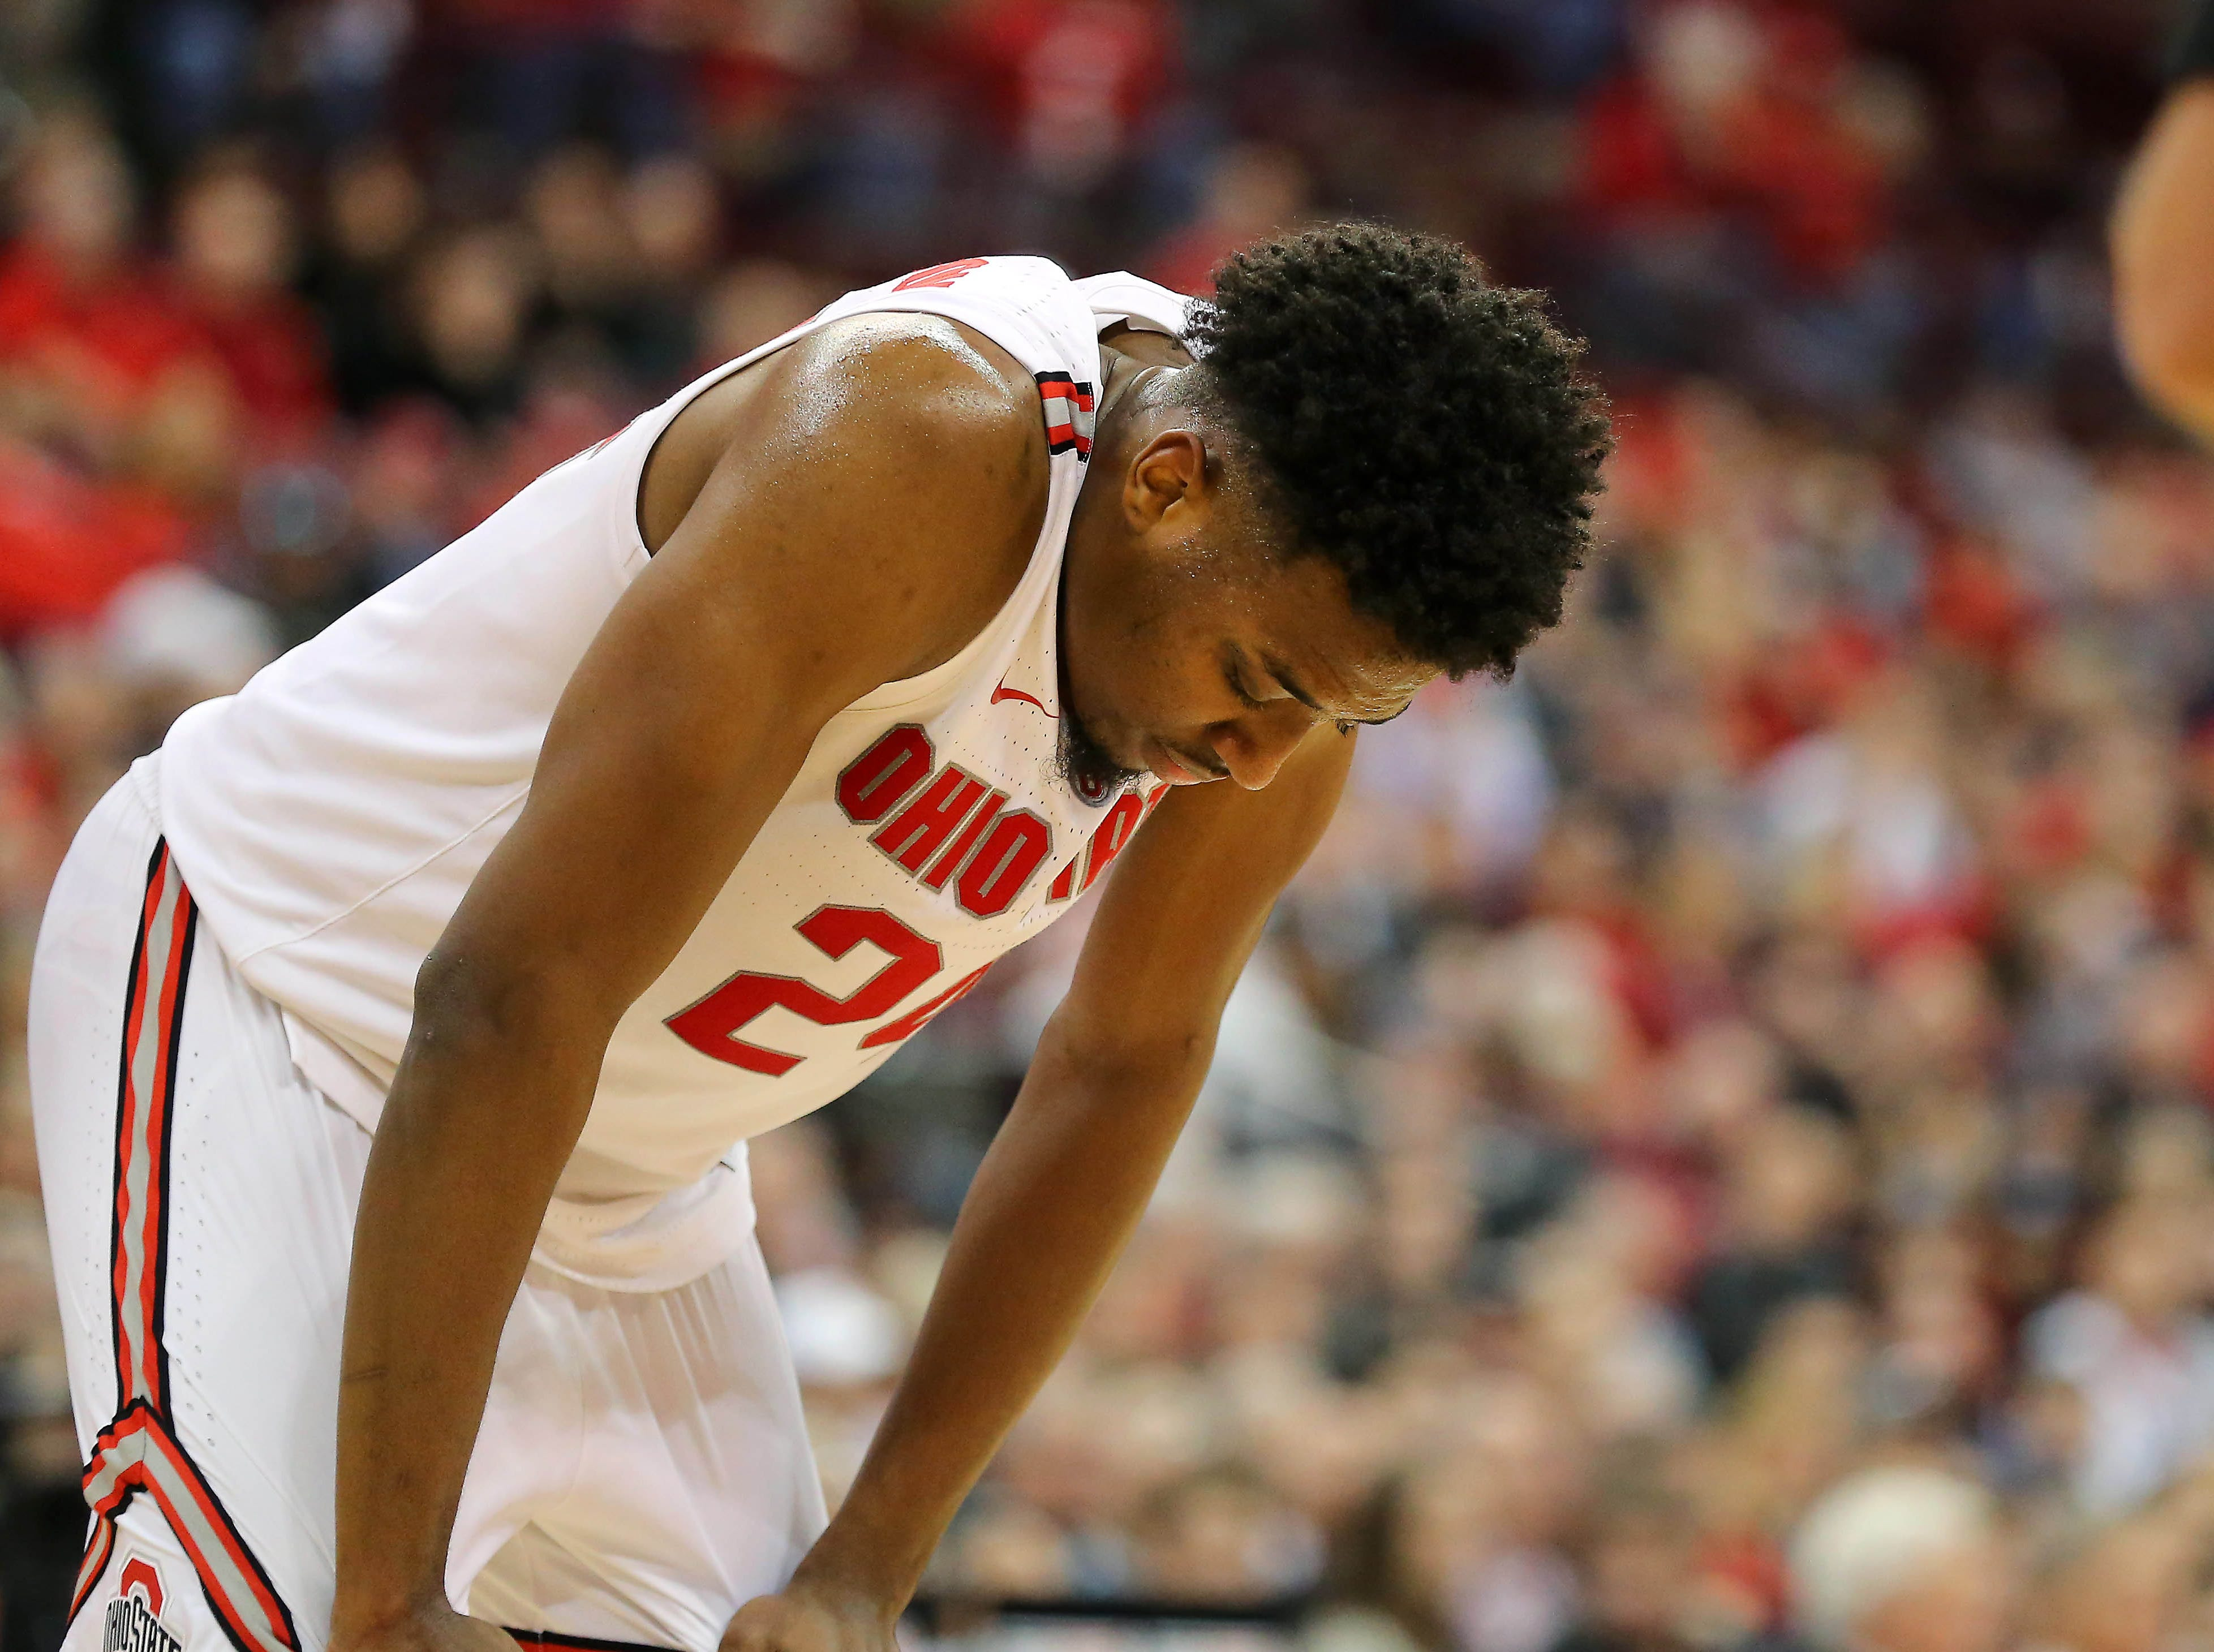 Jan 5, 2019; Columbus, OH, USA; Ohio State Buckeyes forward Andre Wesson (24) reacts after fouling out during the second half against the Michigan State Spartans at Value City Arena. Mandatory Credit: Joe Maiorana-USA TODAY Sports